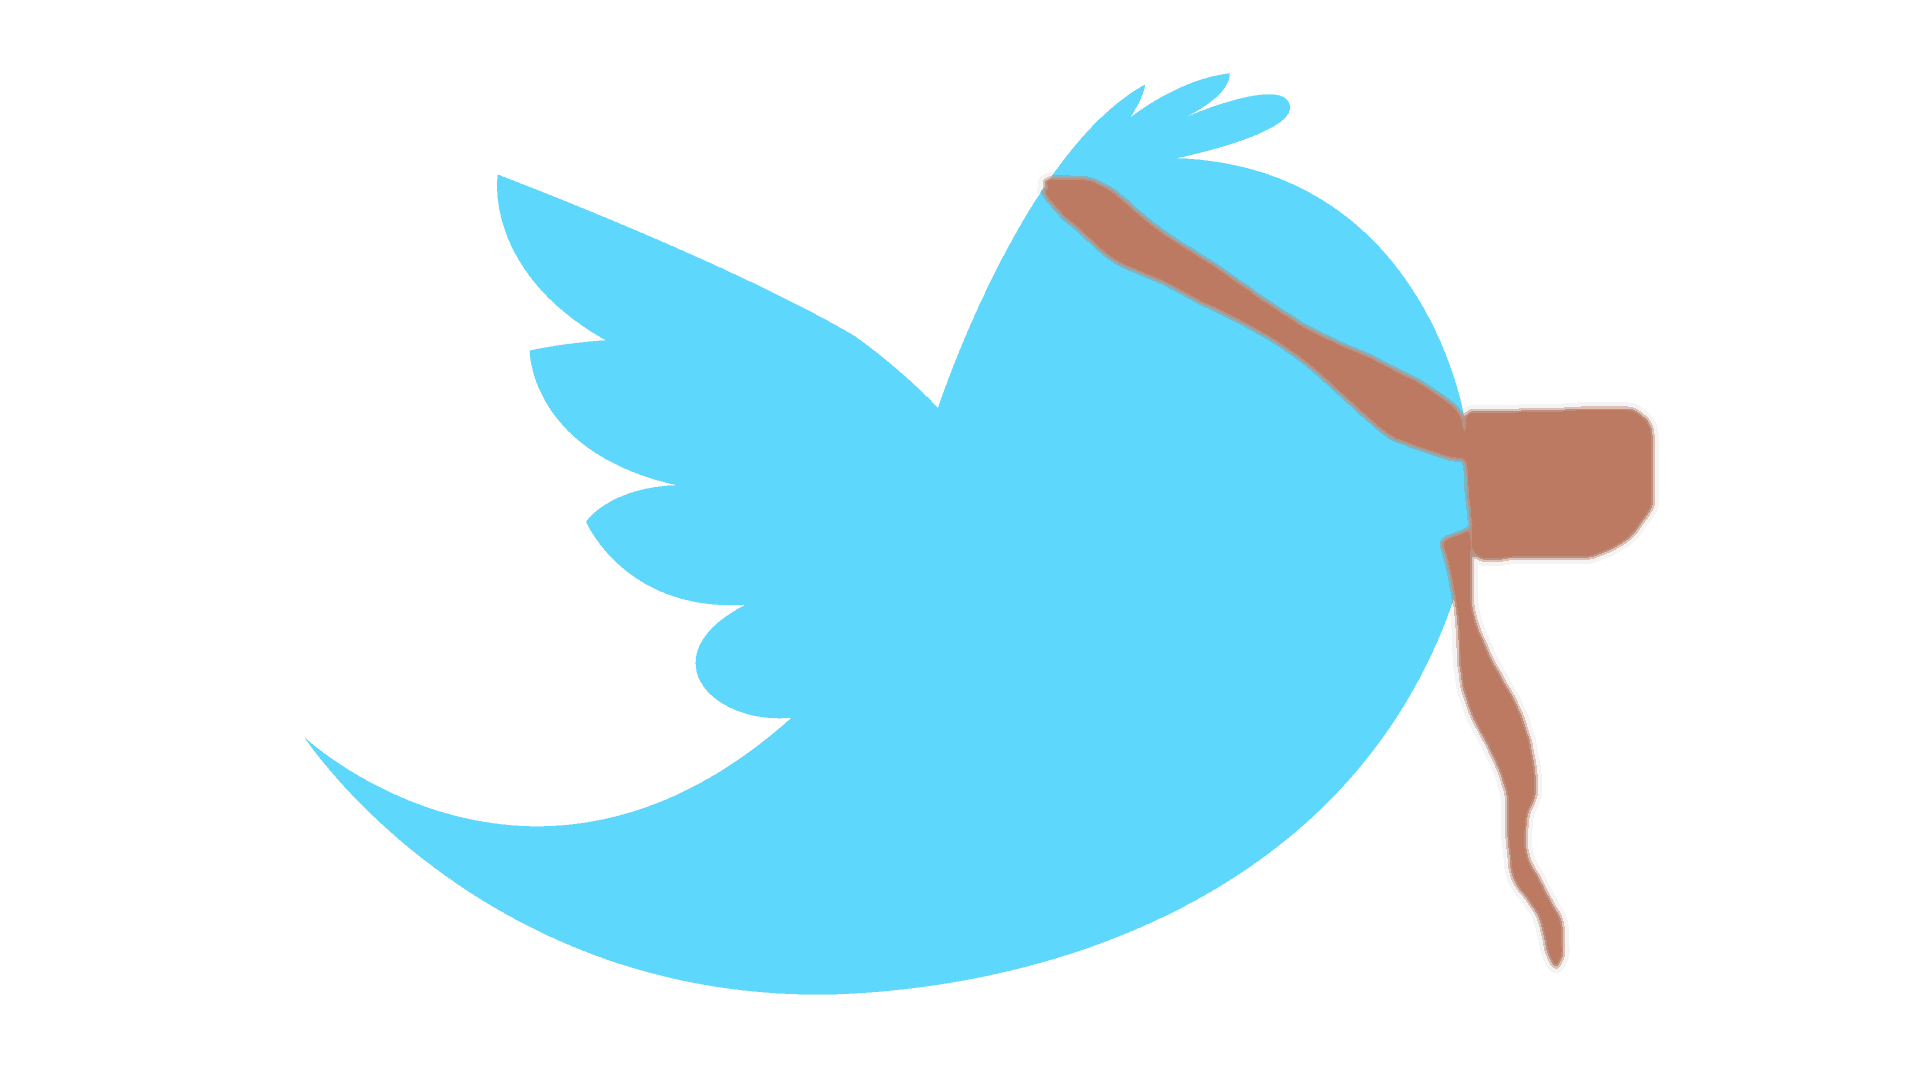 Twitter bird partially muzzled